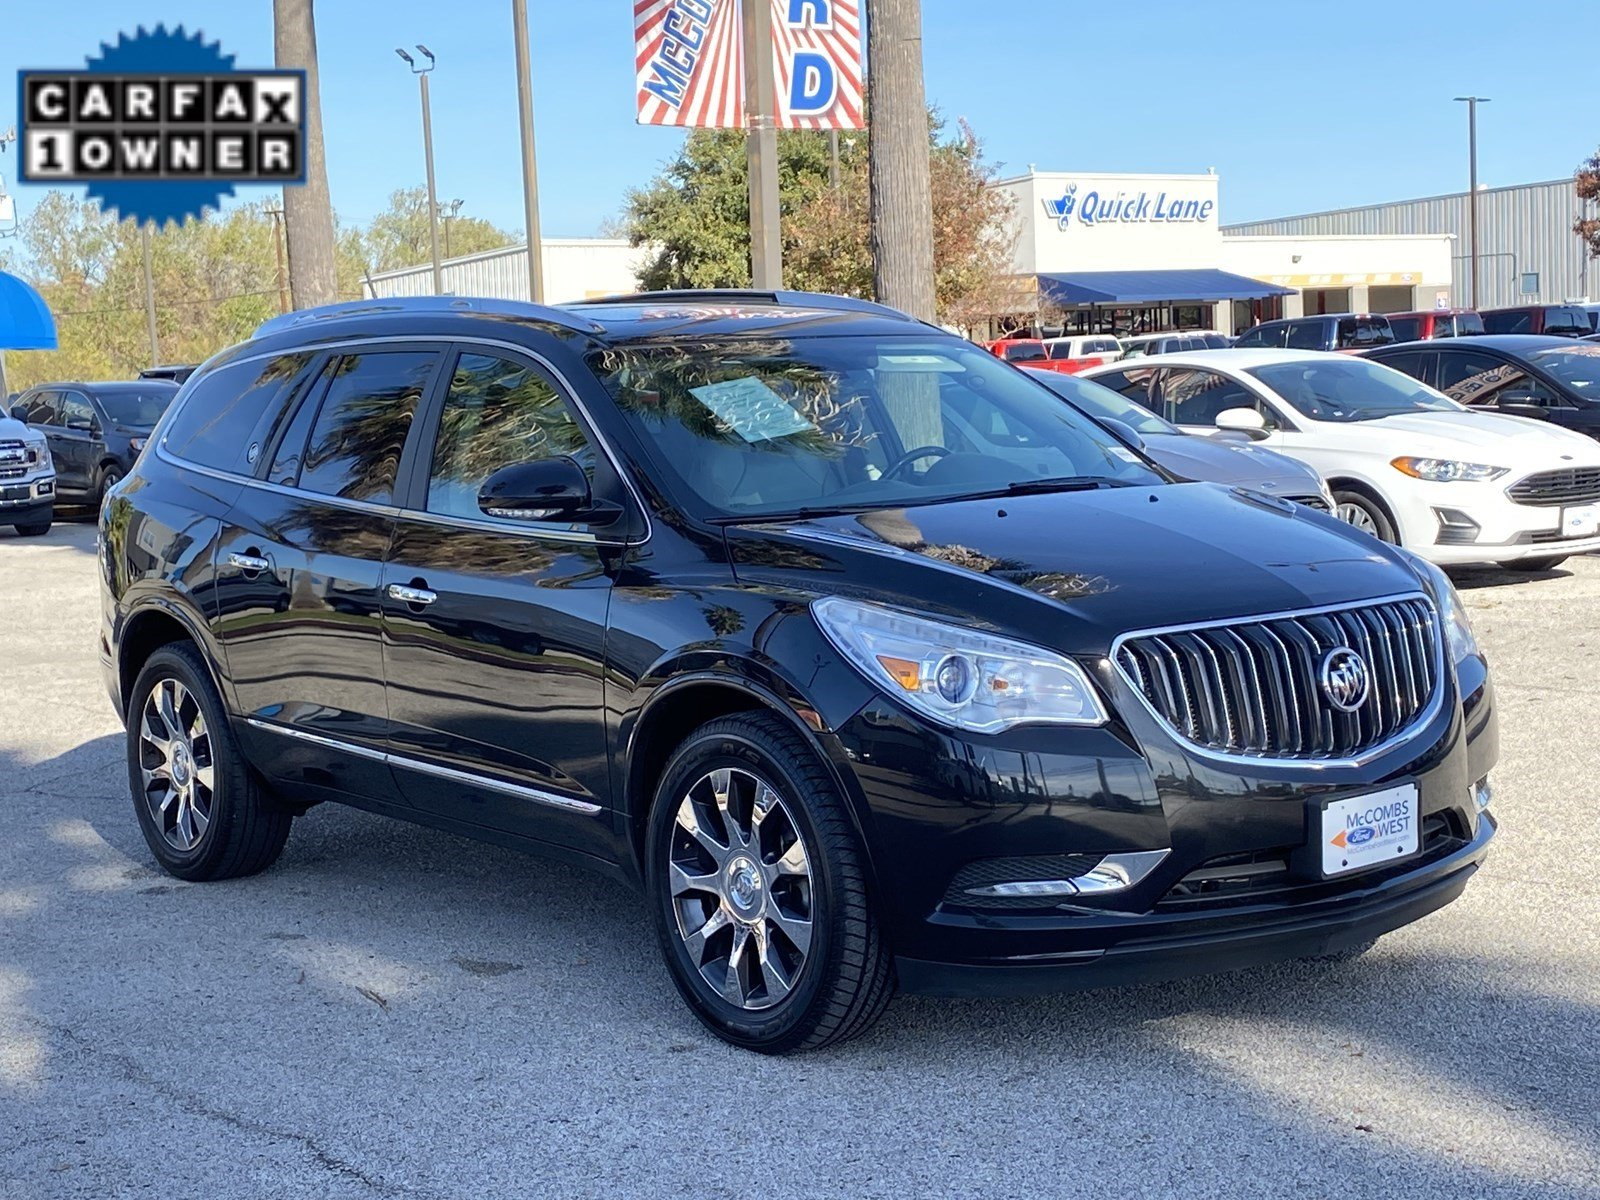 Buick Enclave Awesome Pre Owned 2017 Buick Enclave Premium with Navigation Awd